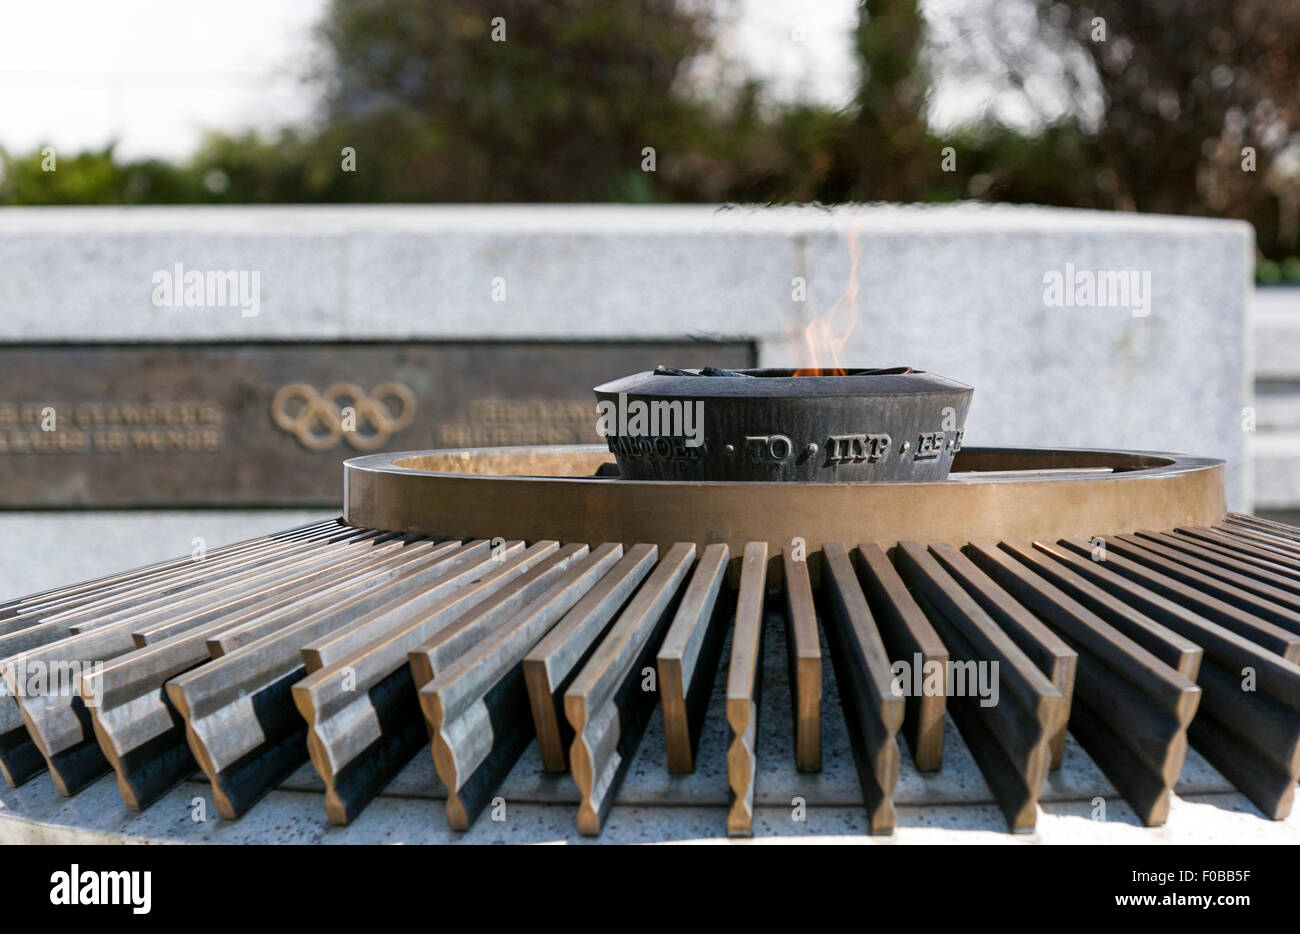 Olympic flame in International Olympic Committee, Olympic Garden Lausanne - Stock Image